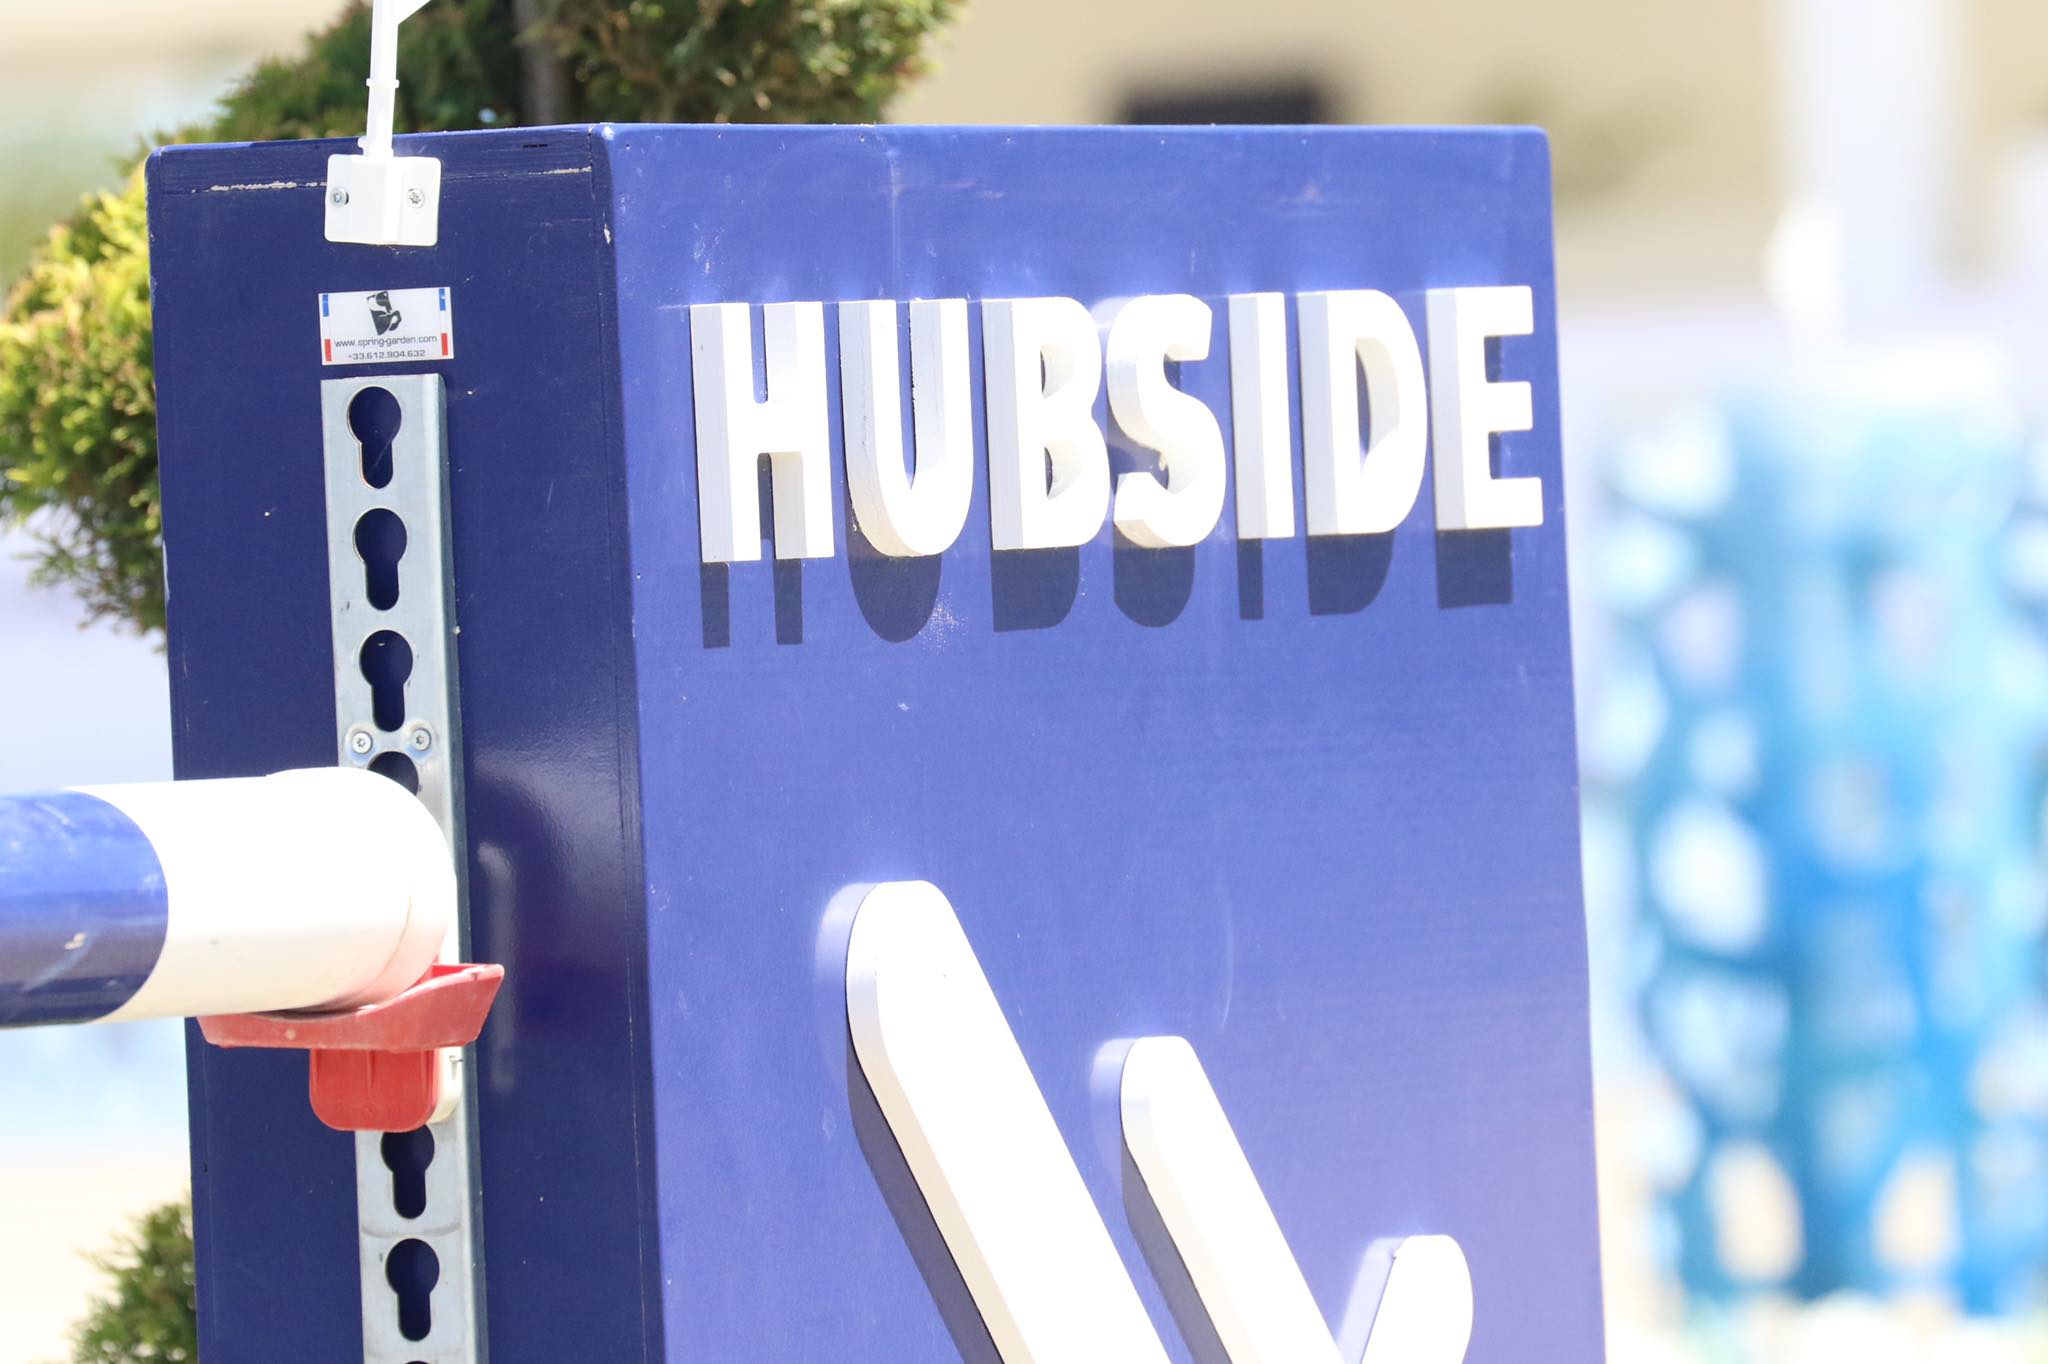 French riders dominate CSI4* openingsclass in Hubside